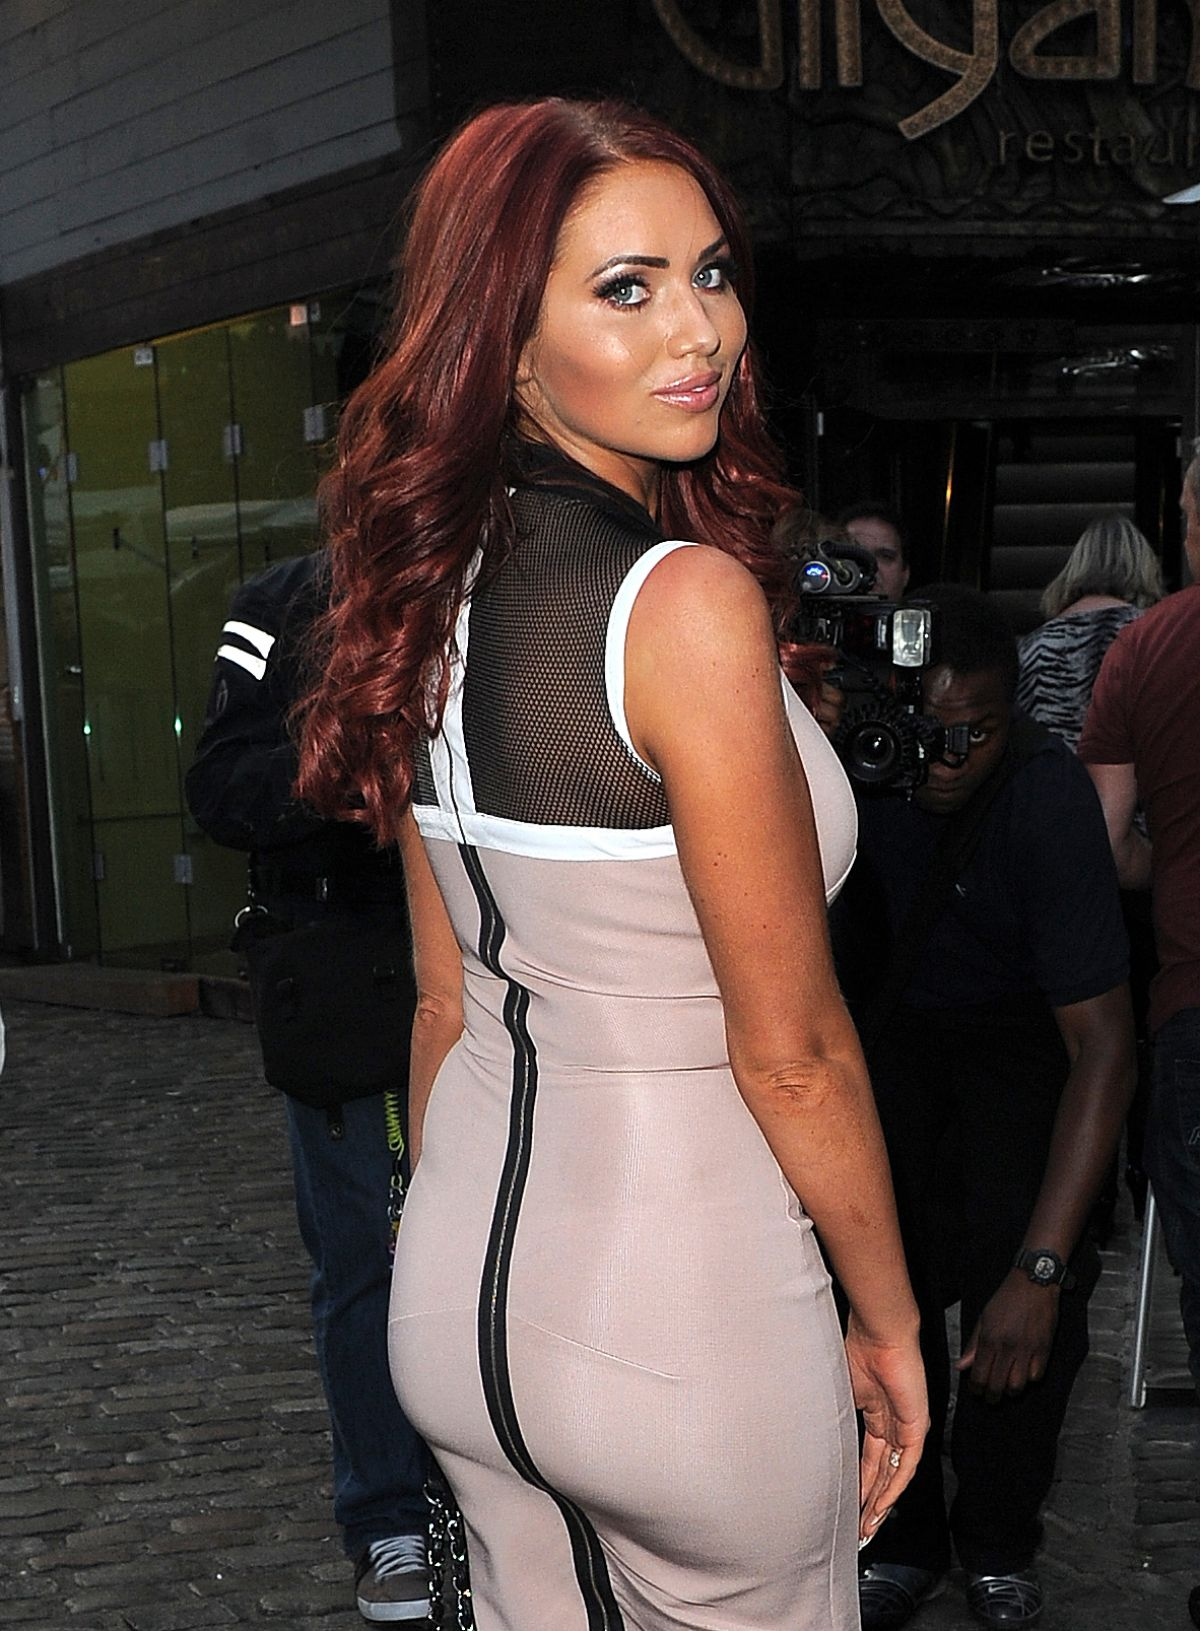 Pictures Amy Childs nudes (59 photos), Pussy, Sideboobs, Boobs, butt 2018